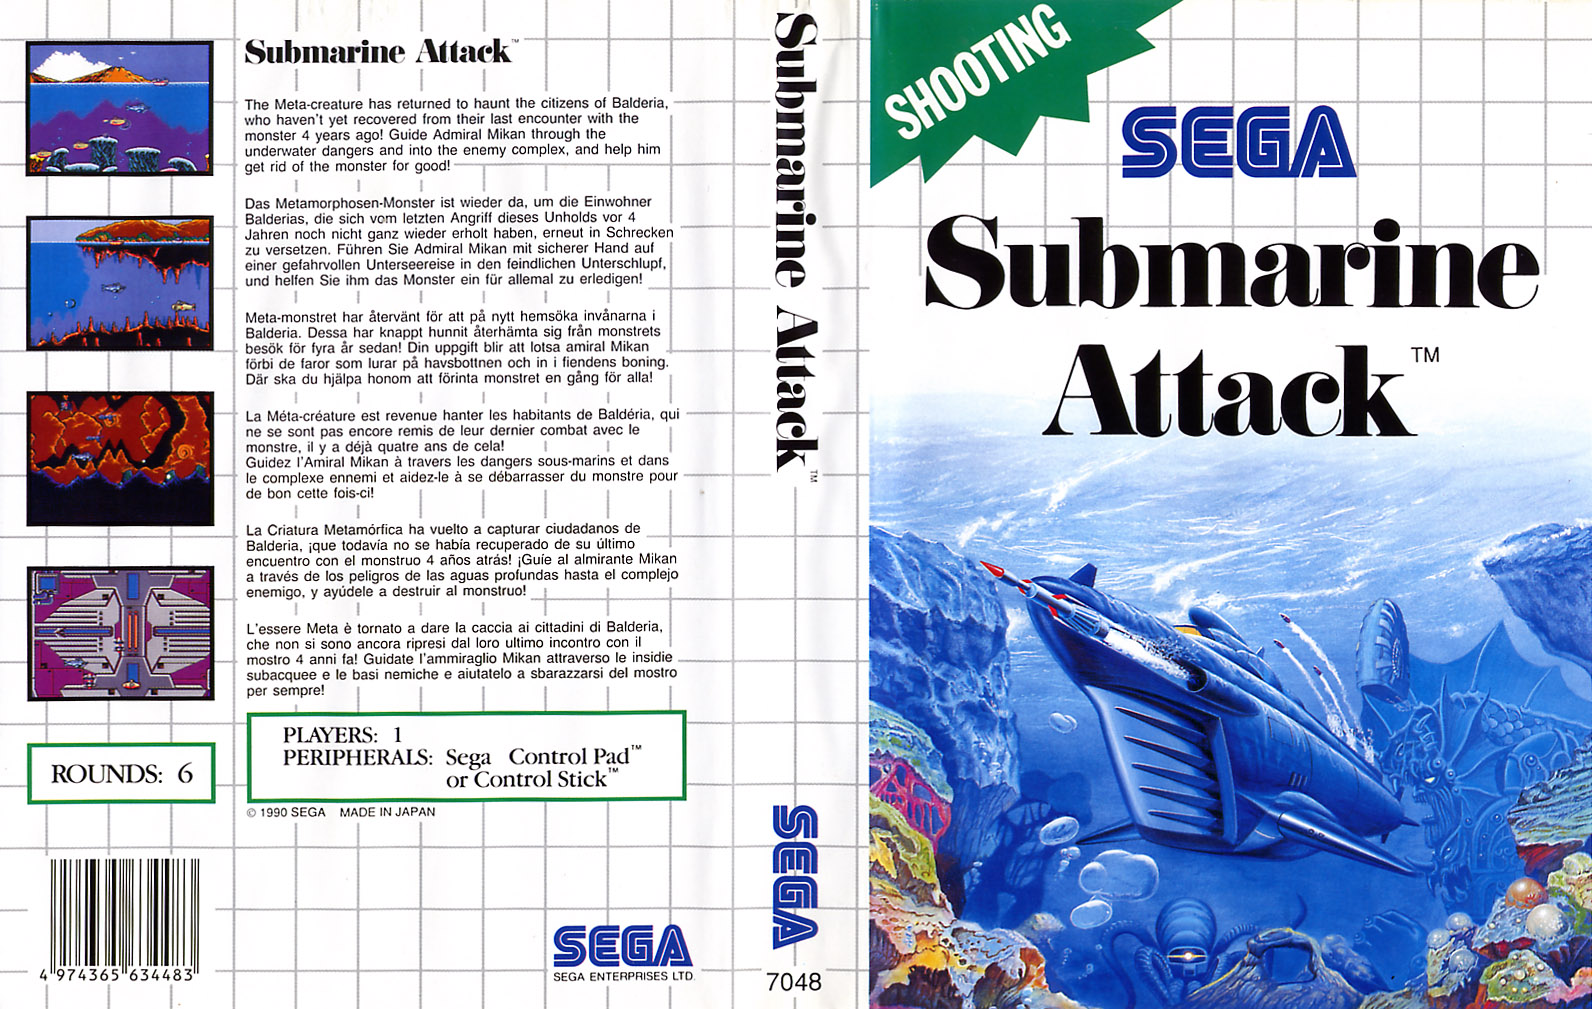 http://www.smspower.org/uploads/Scans/SubmarineAttack-SMS-EU.jpg